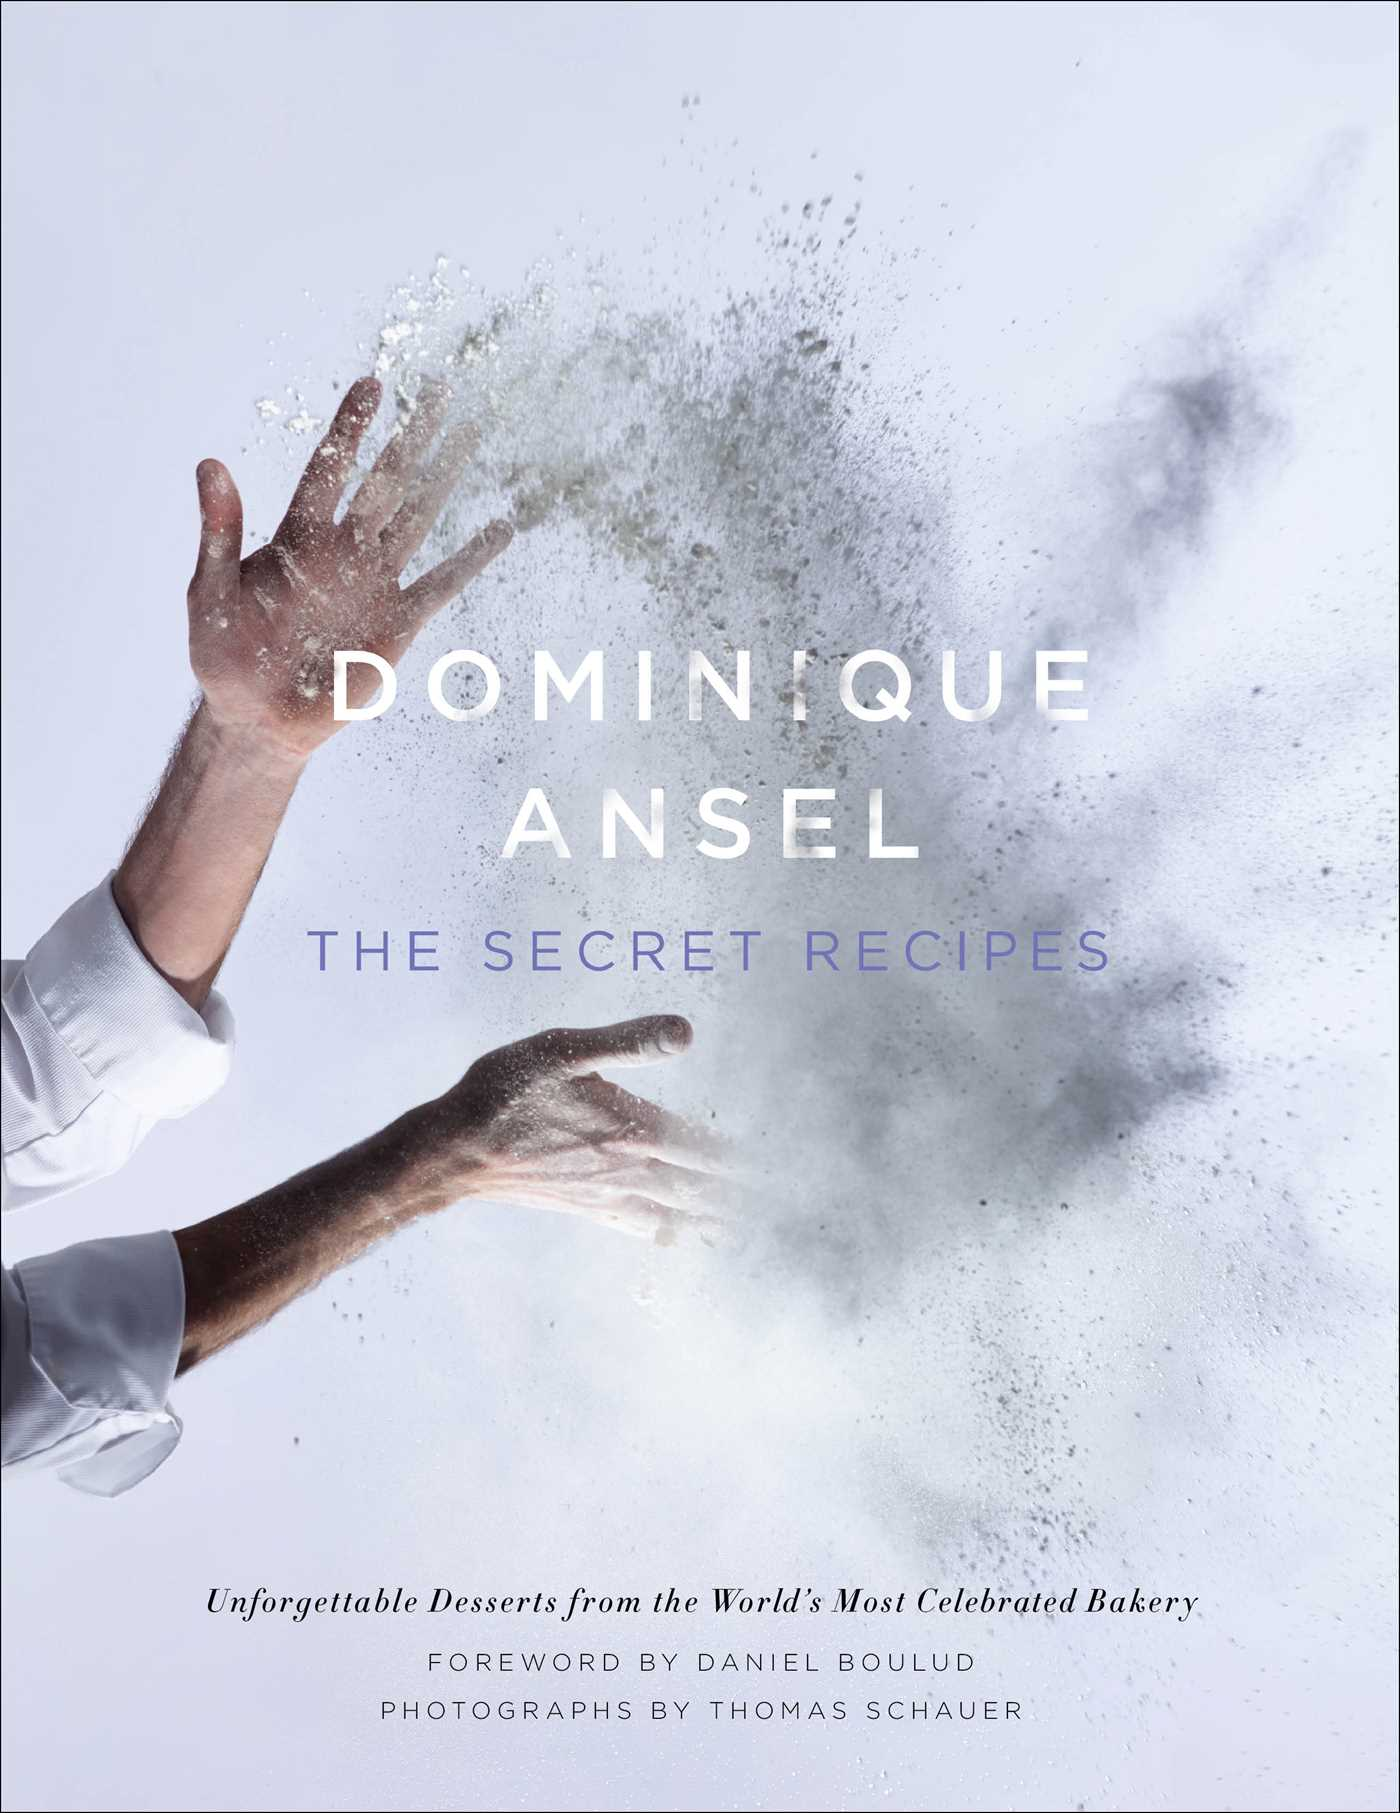 Dominique ansel special signed edition 9781501112652 hr